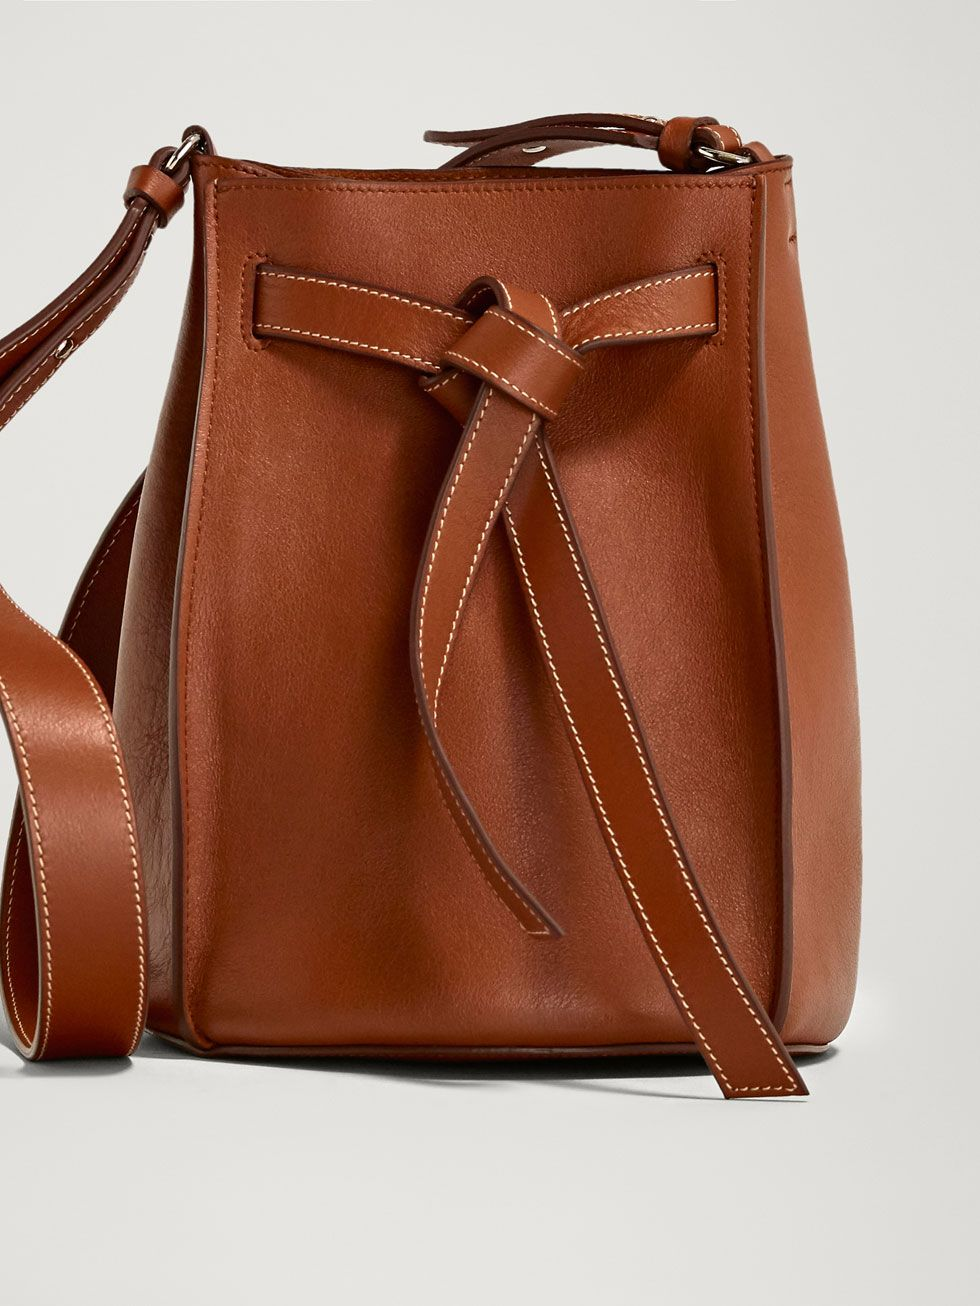 e1c2413c NAPPA LEATHER BUCKET BAG WITH TIE STRAP | fashion to get dressed up ...